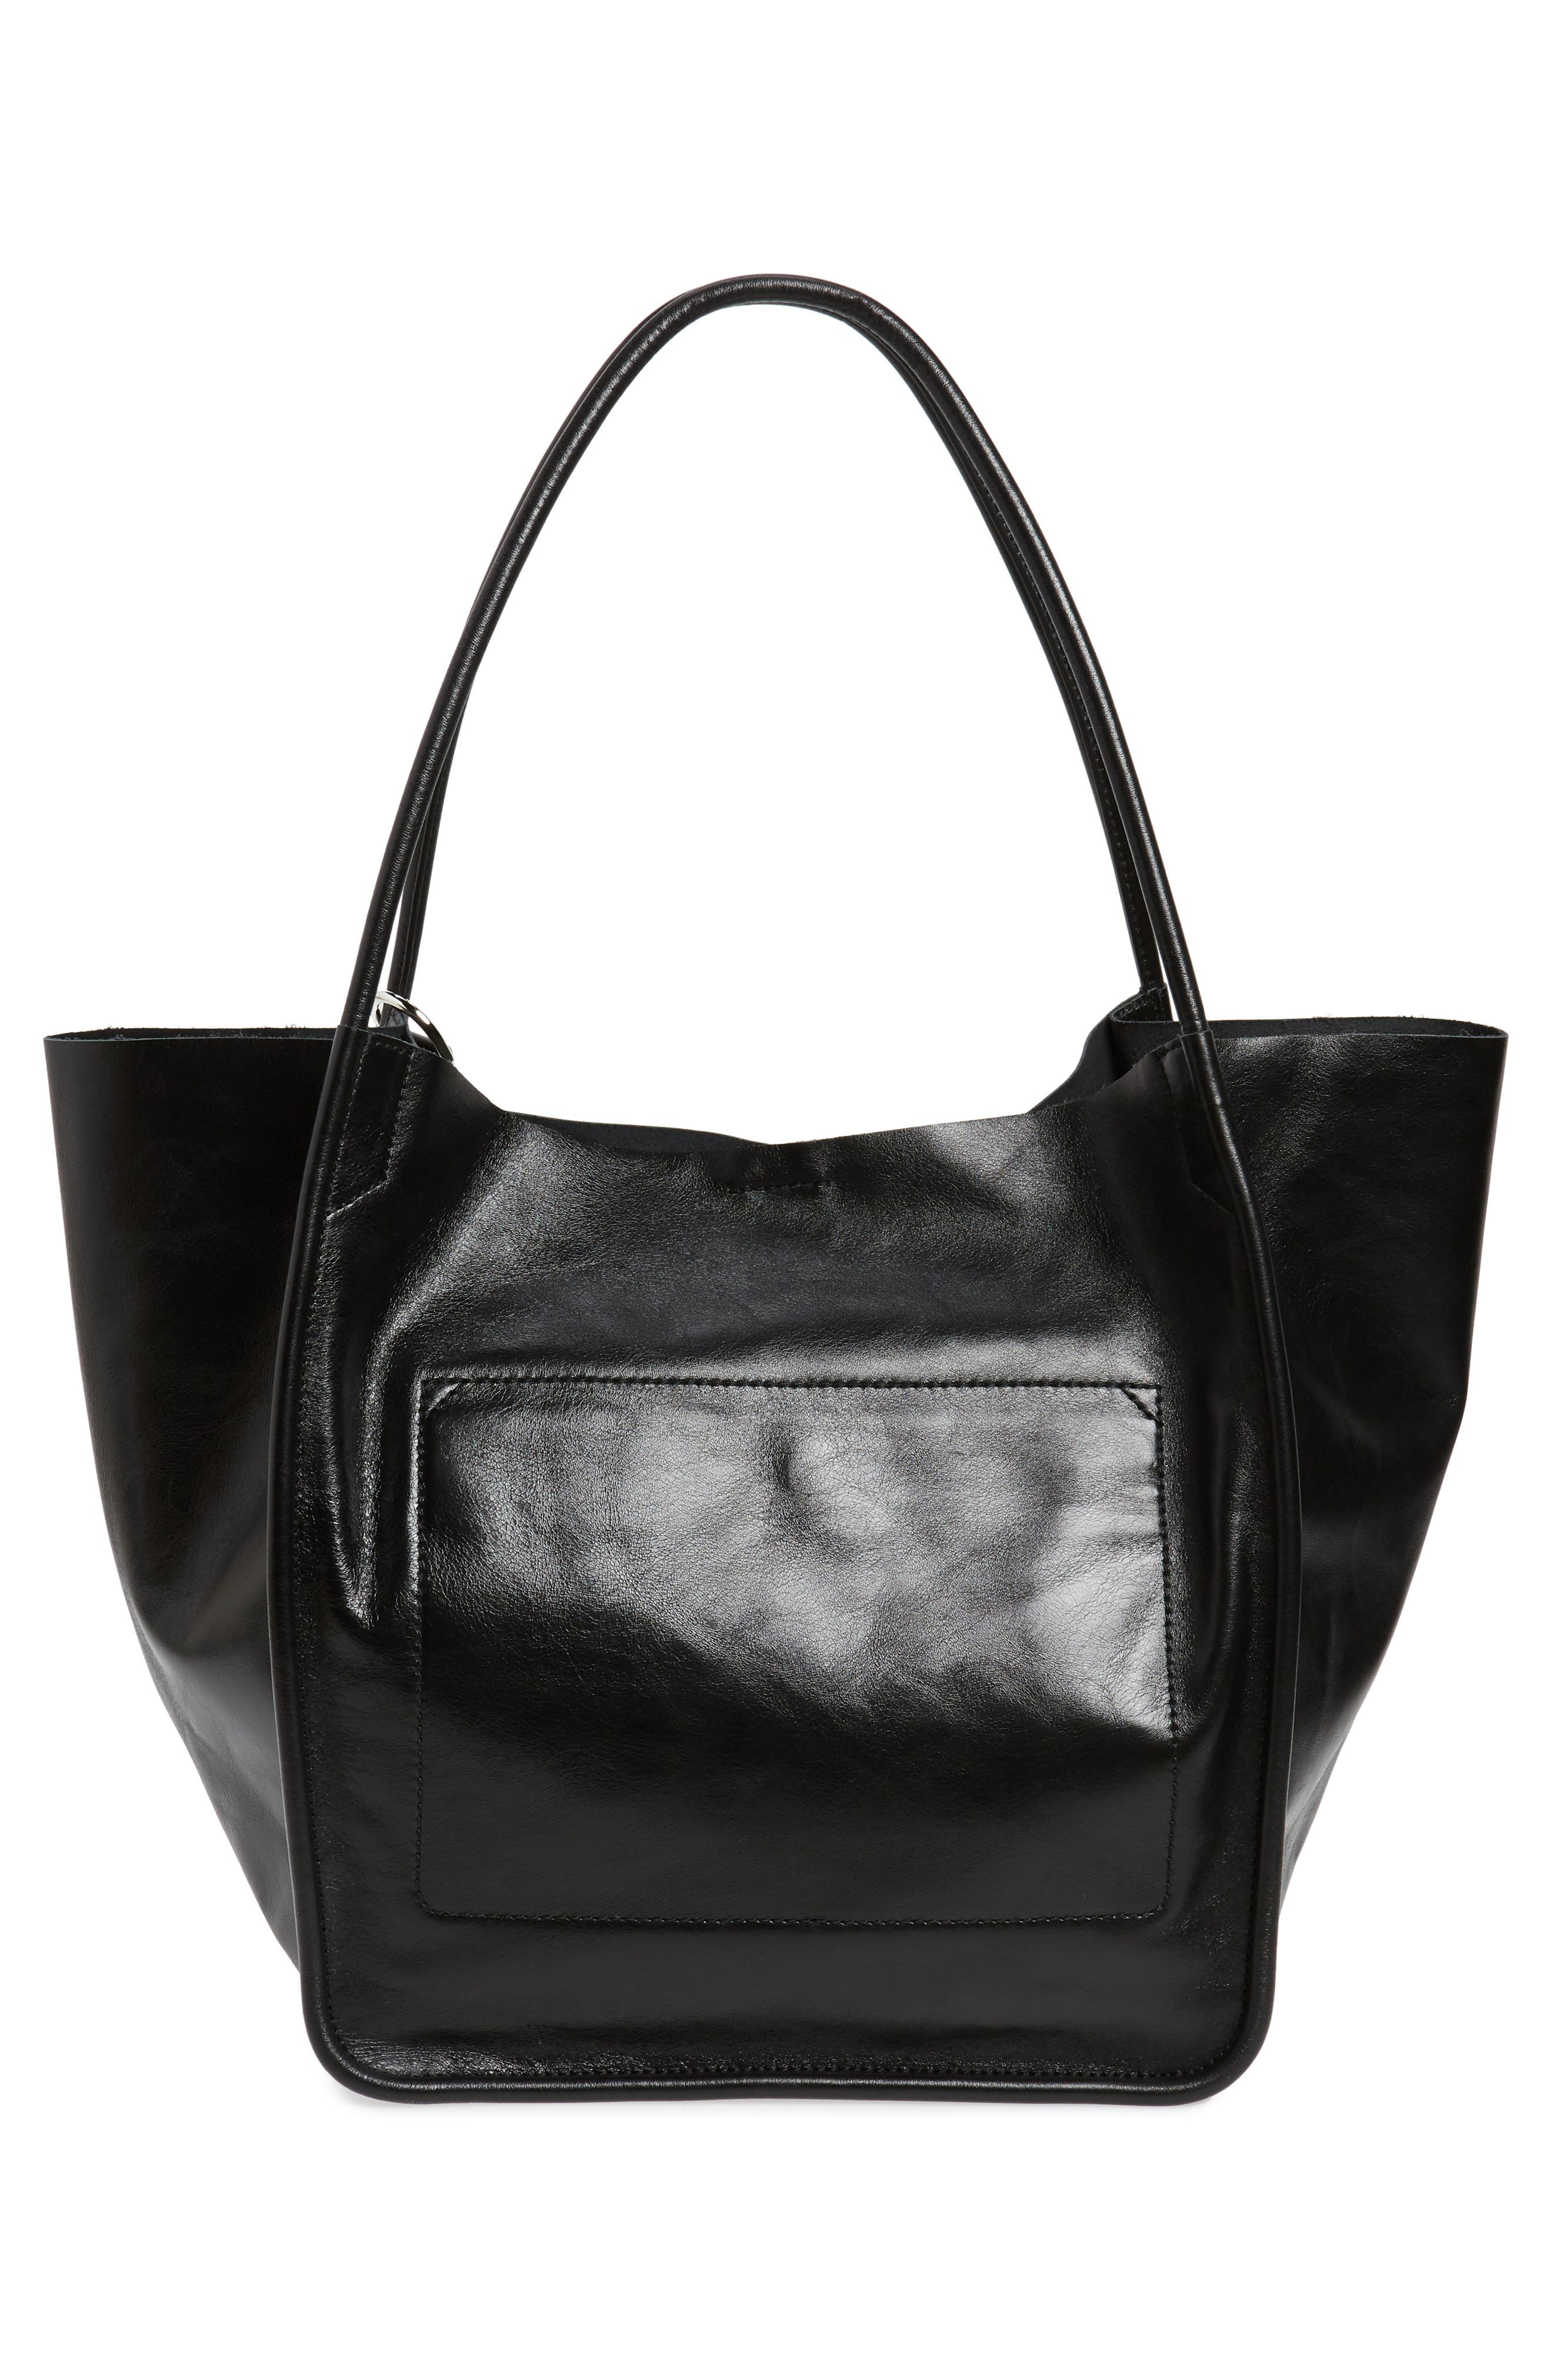 PROENZA SCHOULER, Large Calfskin Leather Tote, Alternate thumbnail 3, color, BLACK